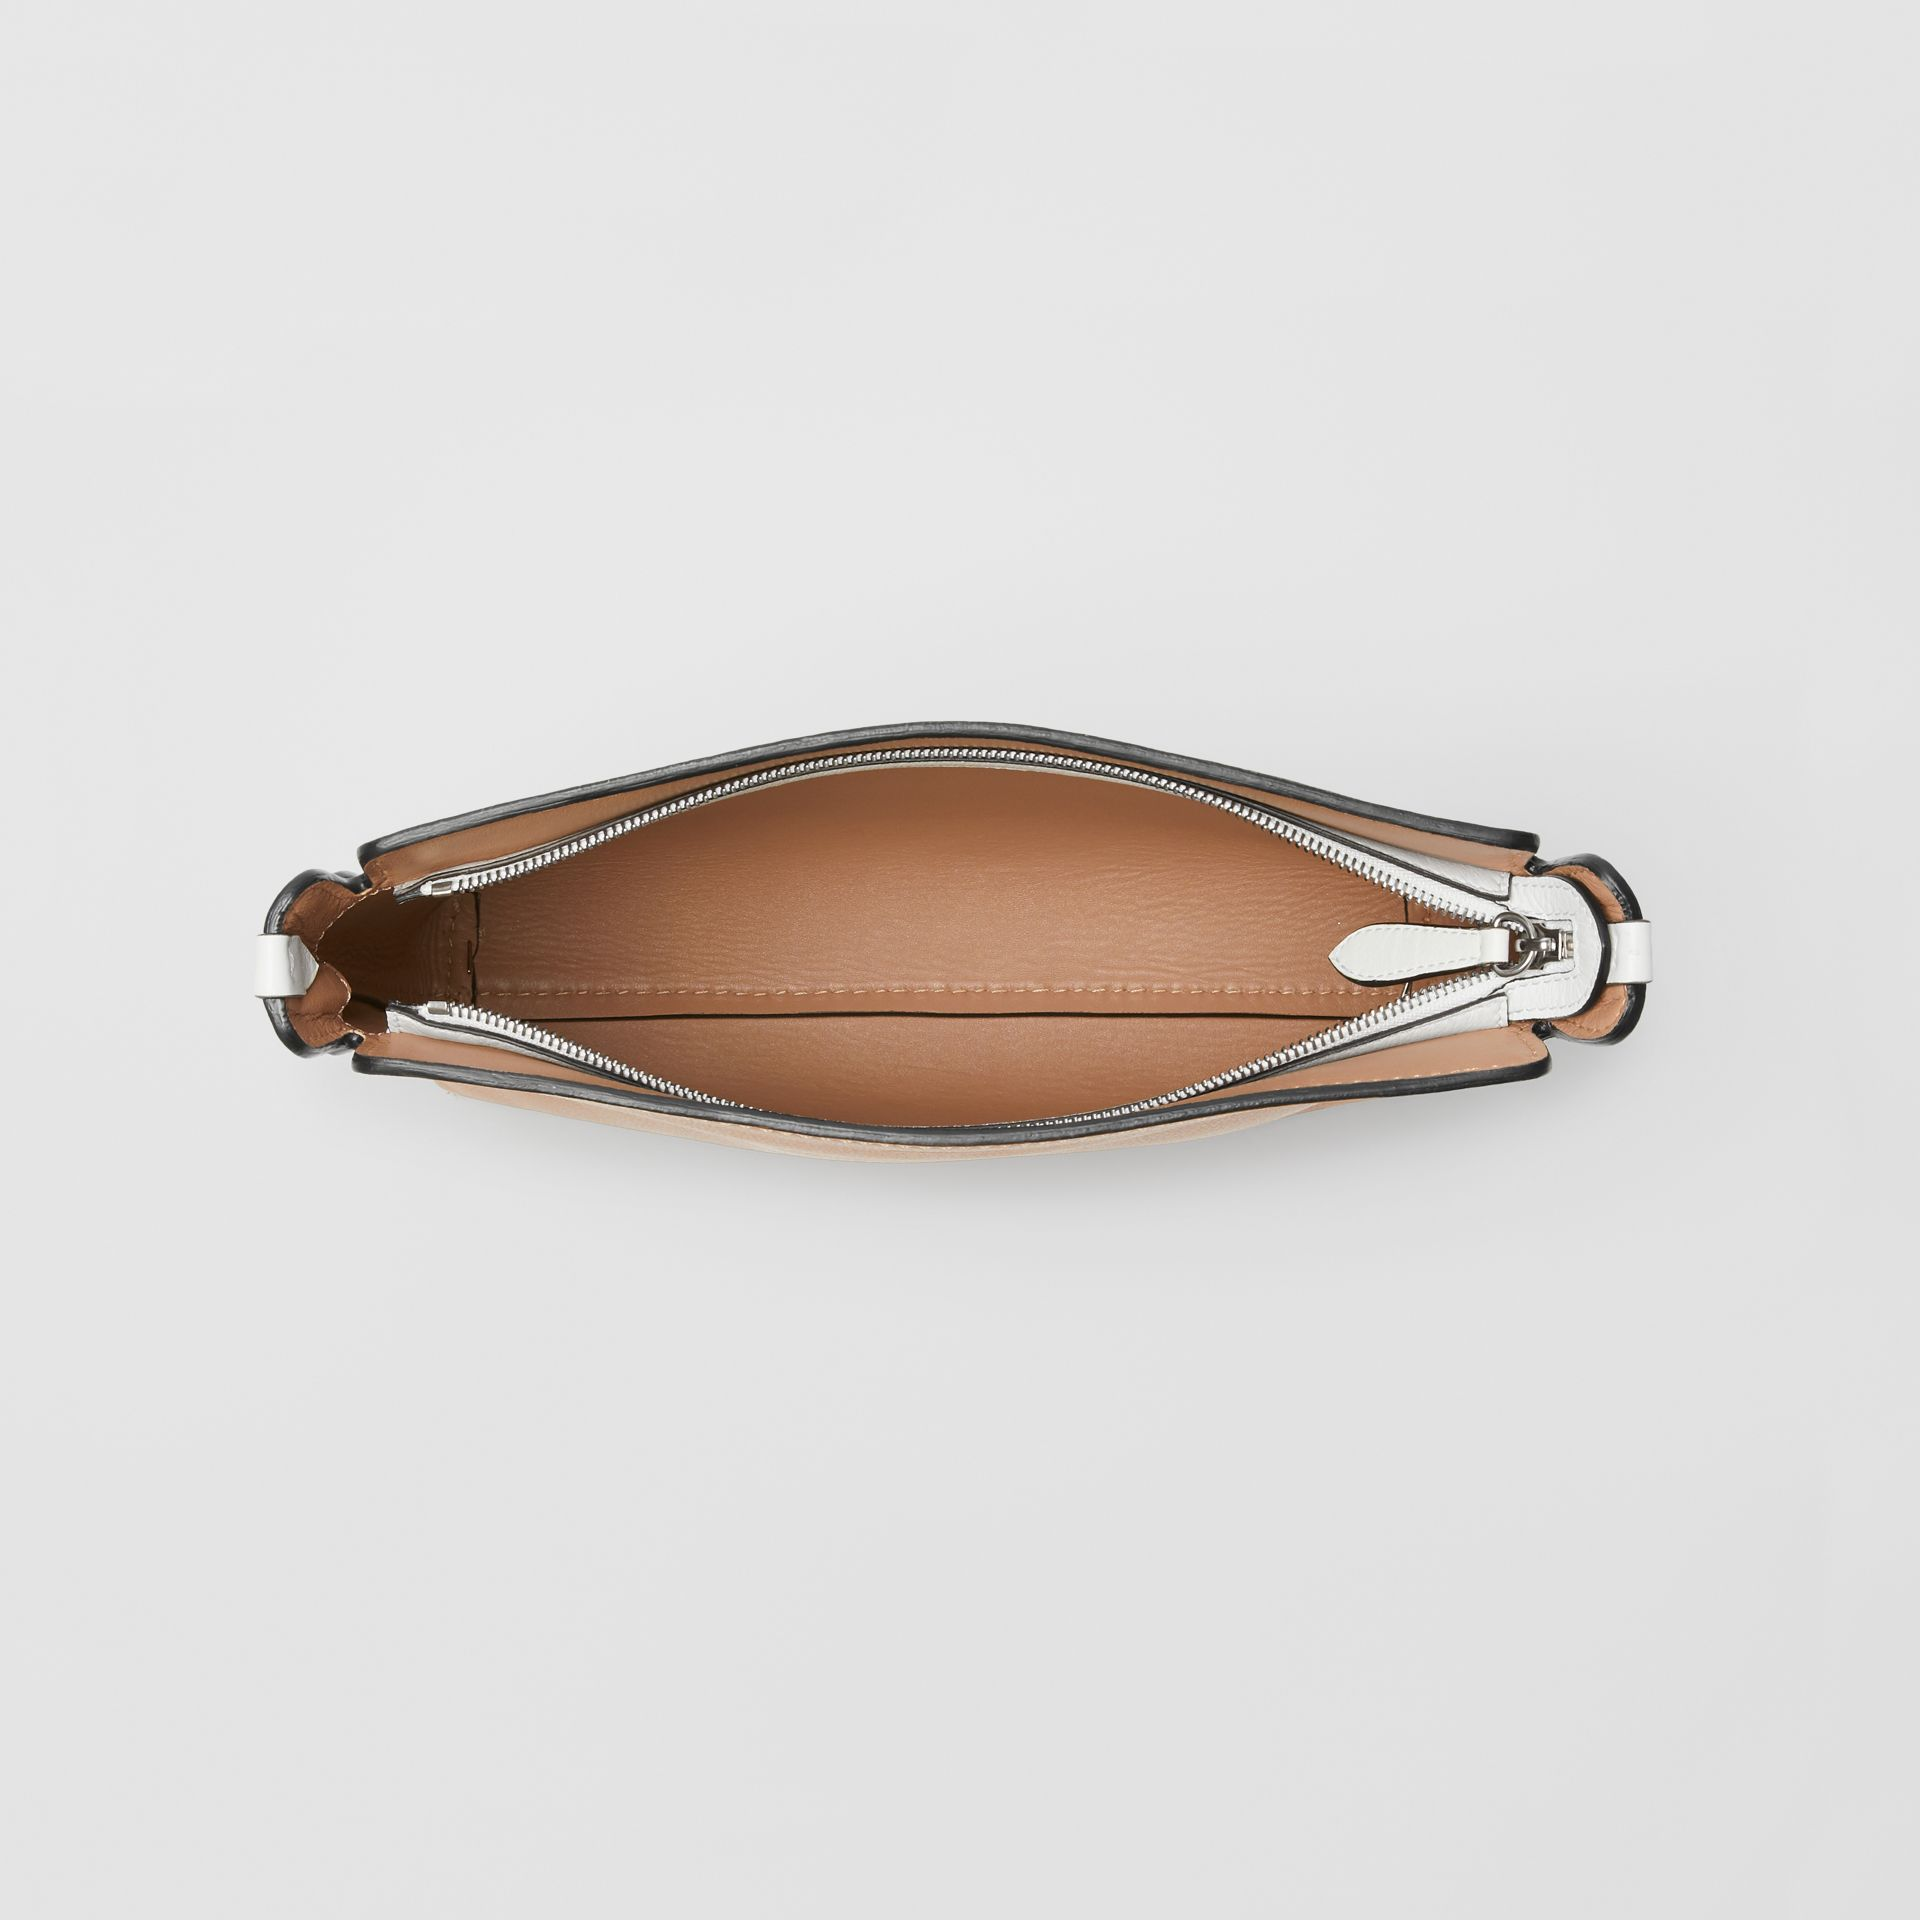 Medium Two-tone Leather Clutch in Light Camel/chalk White - Women | Burberry United States - gallery image 4